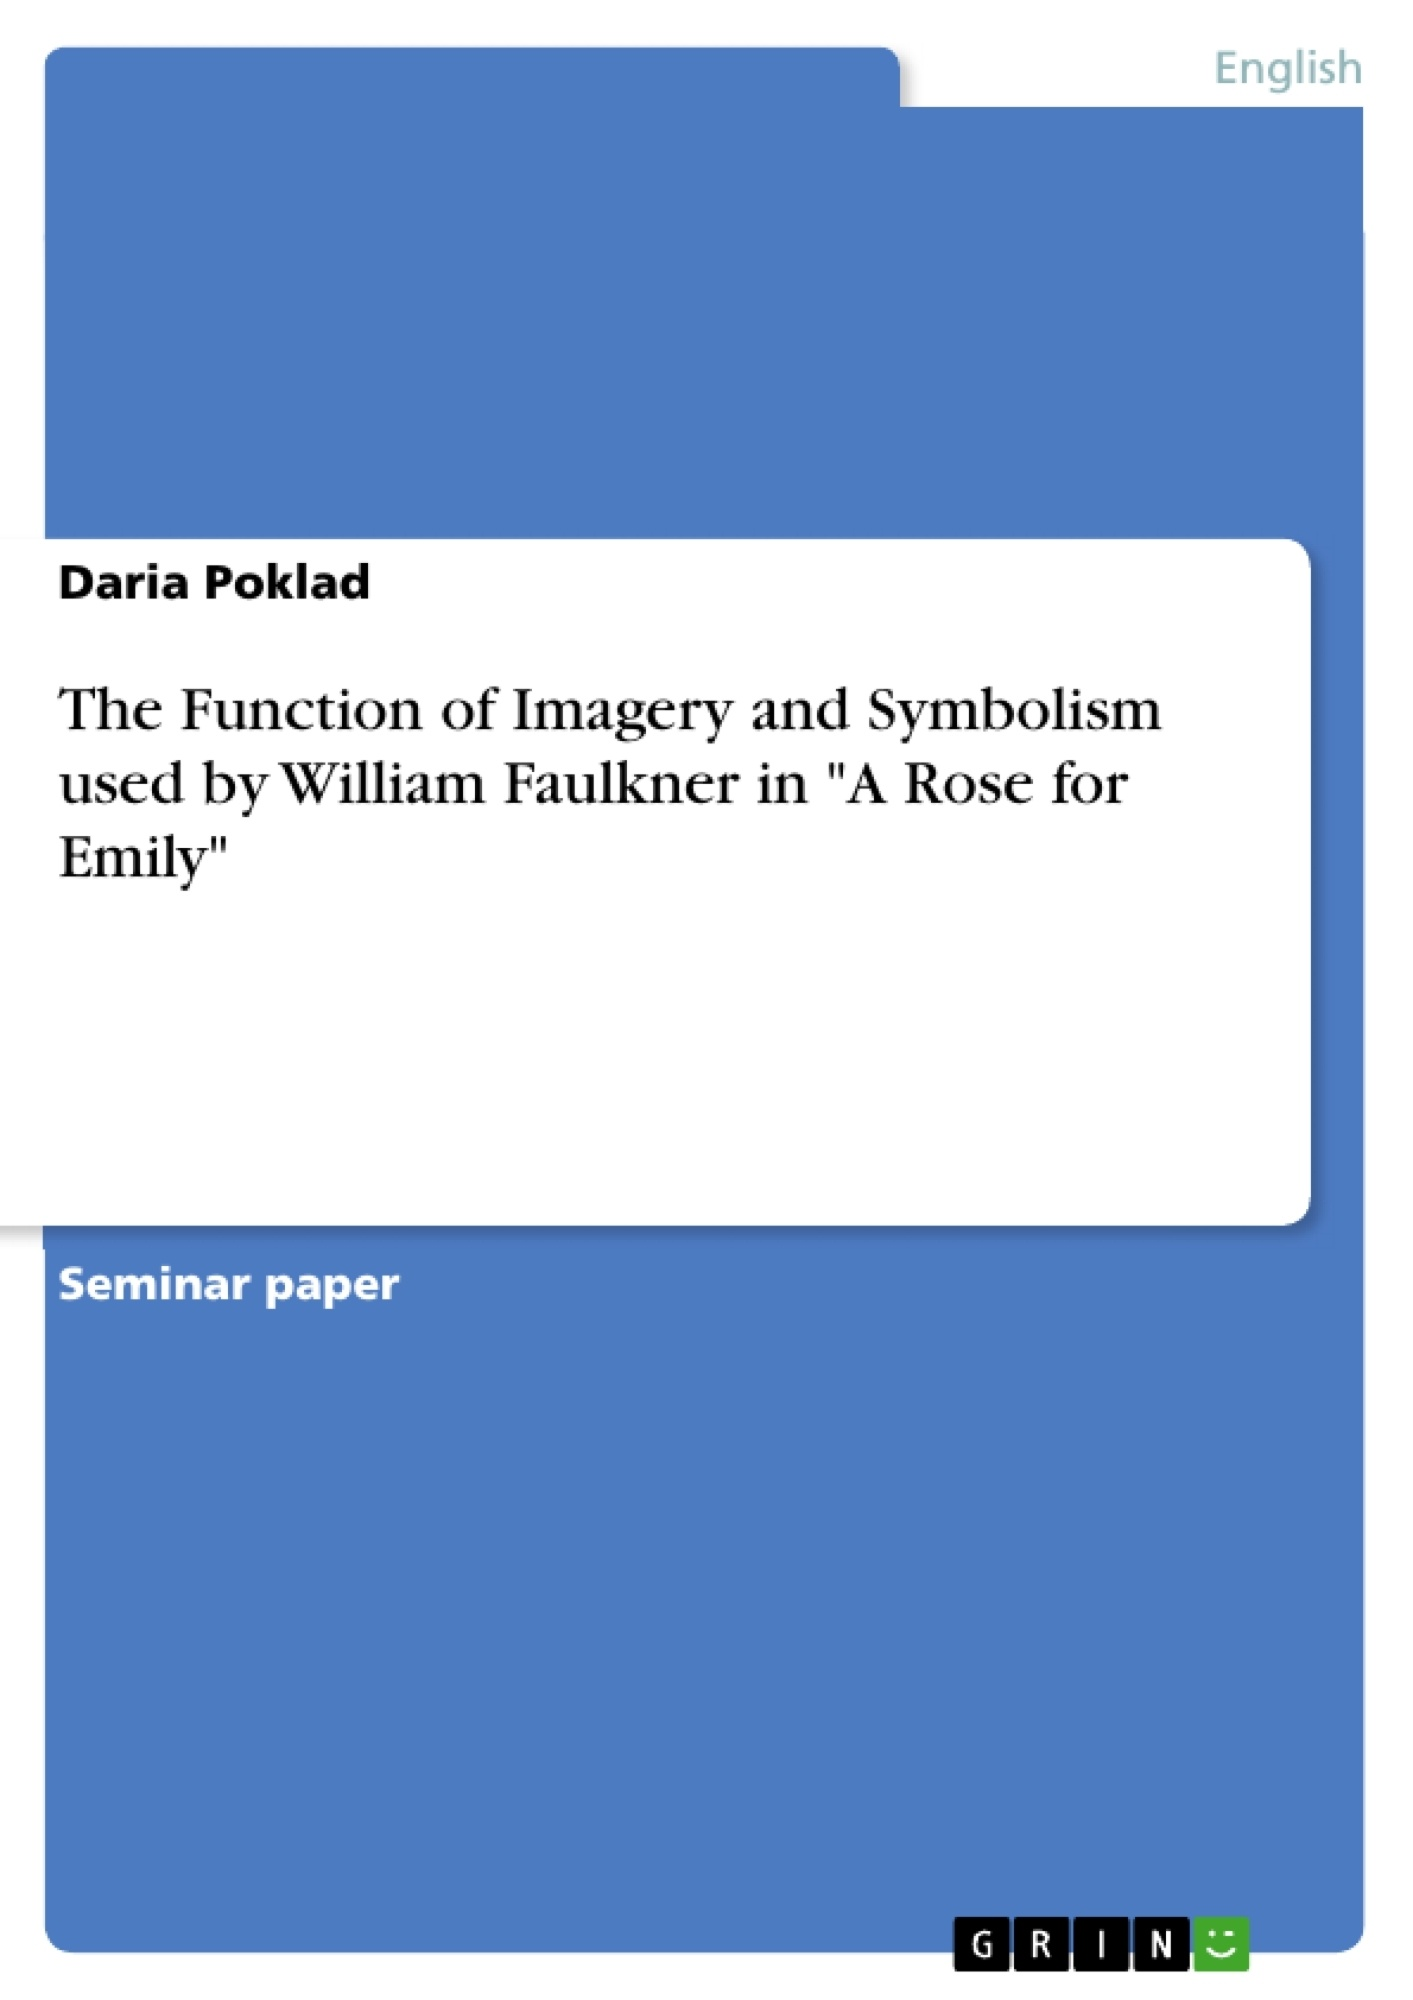 """Title: The Function of Imagery and Symbolism used by William Faulkner in """"A Rose for Emily"""""""